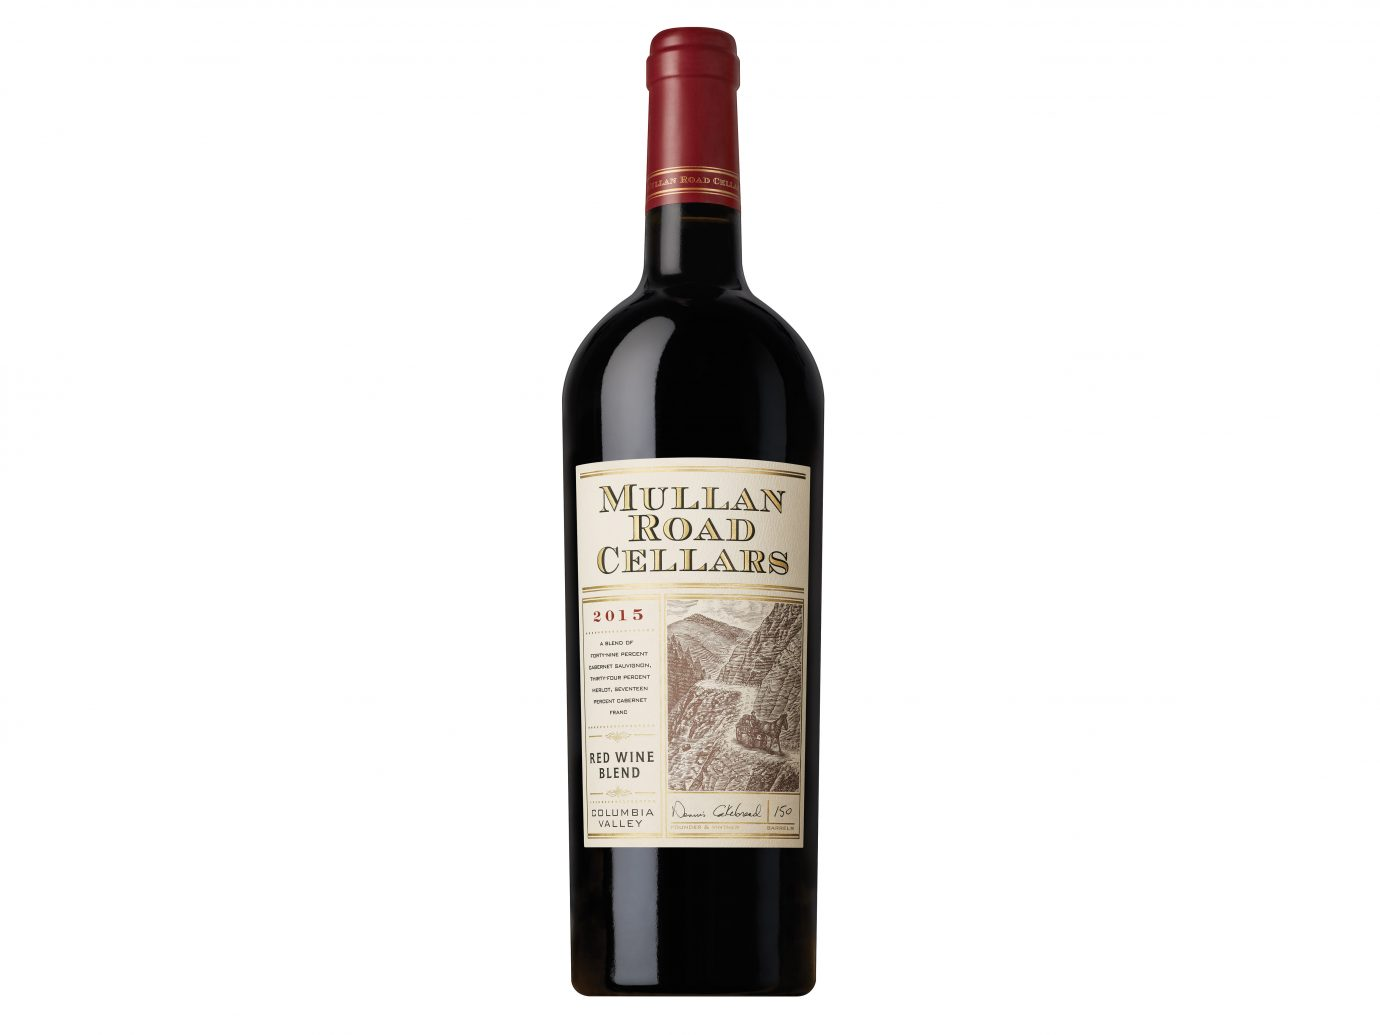 Mullan Road Cellars 2015 Red Wine Blend copy